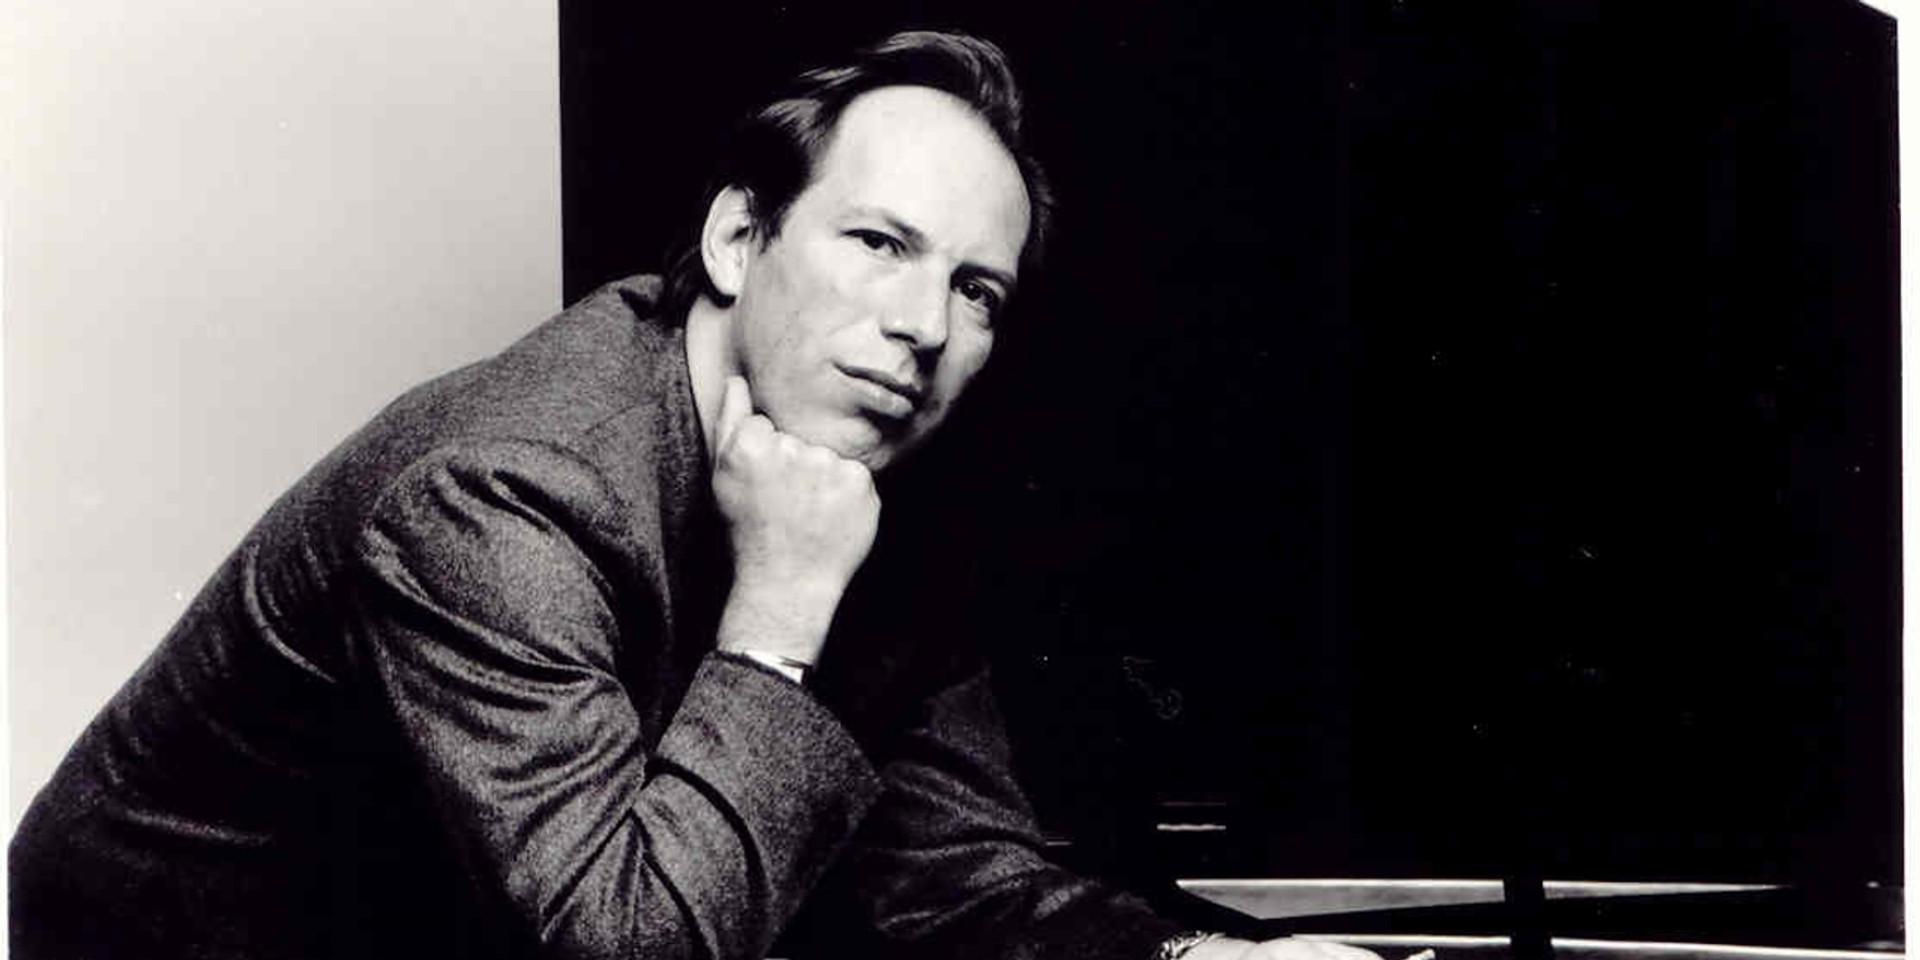 What are your favourite Hans Zimmer soundtracks? Help us build our playlist